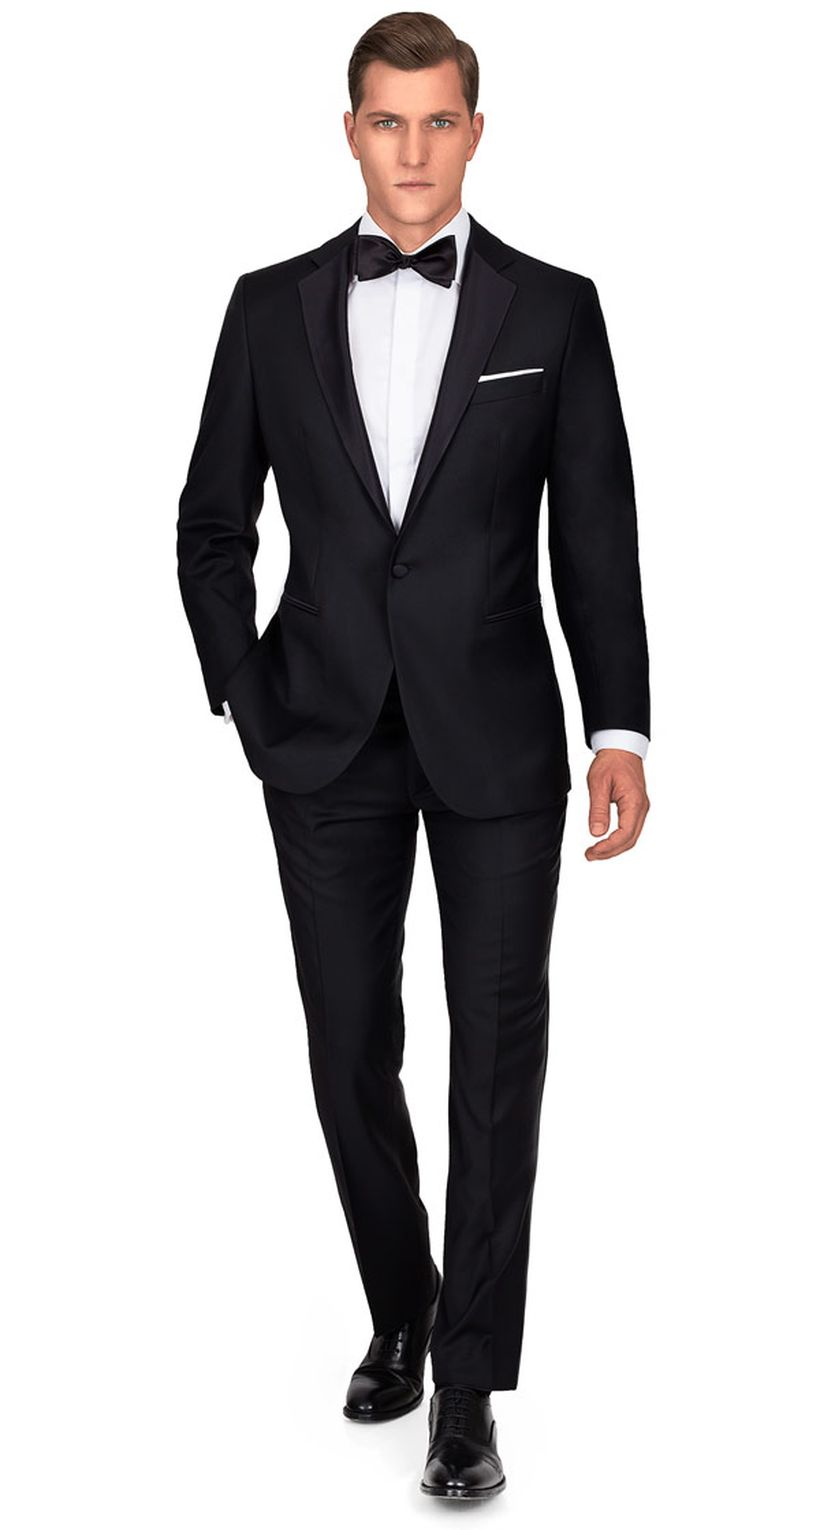 Elegant men's formal wear with tuxedo and suits 65